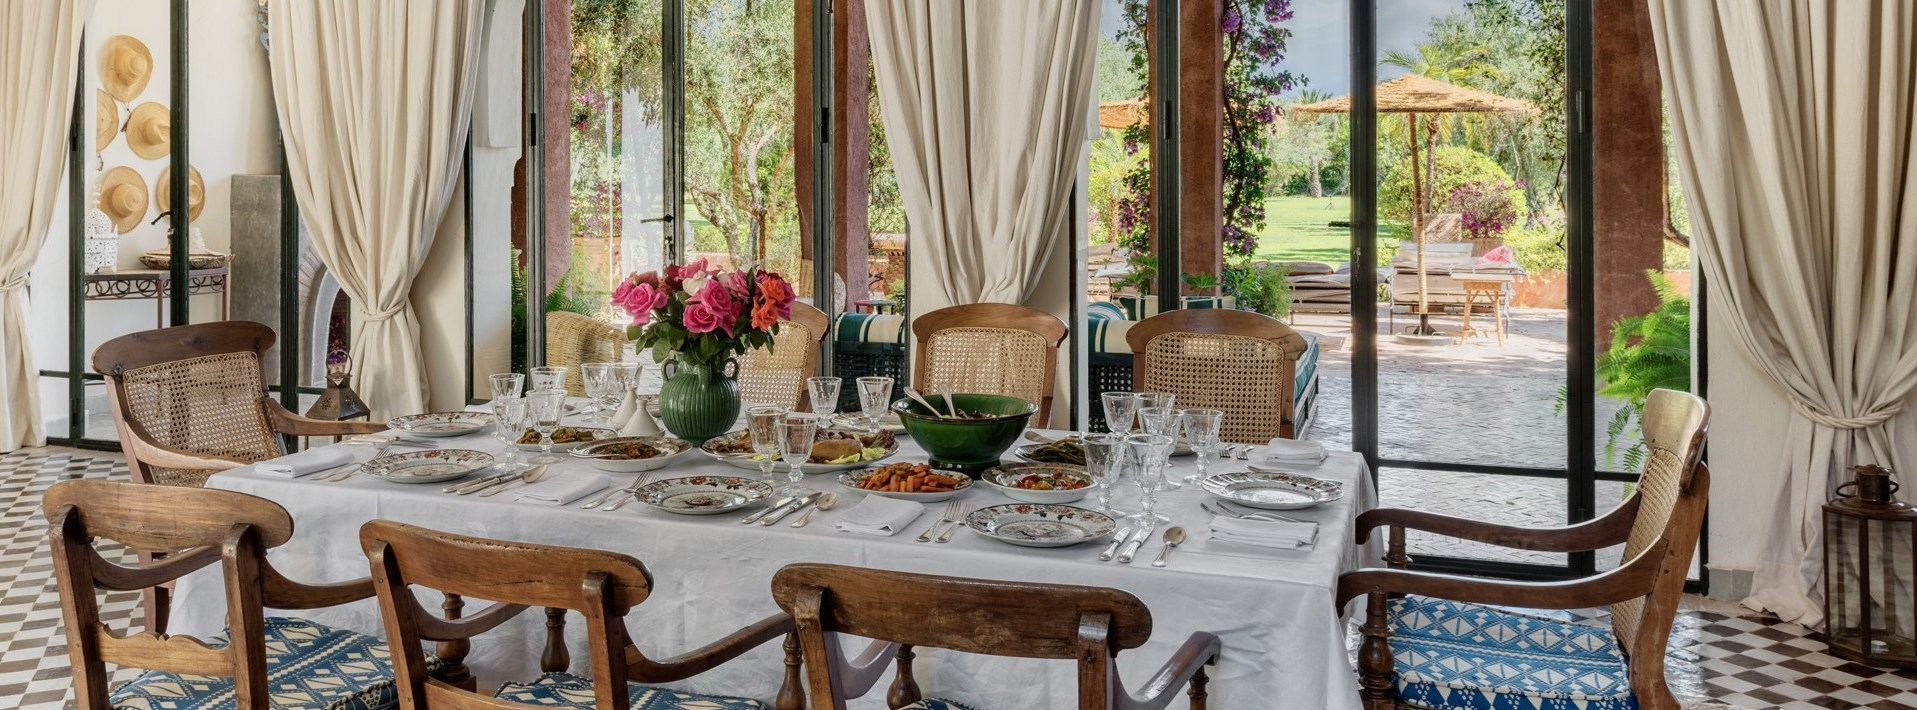 dar-des-roses-blanches-dining